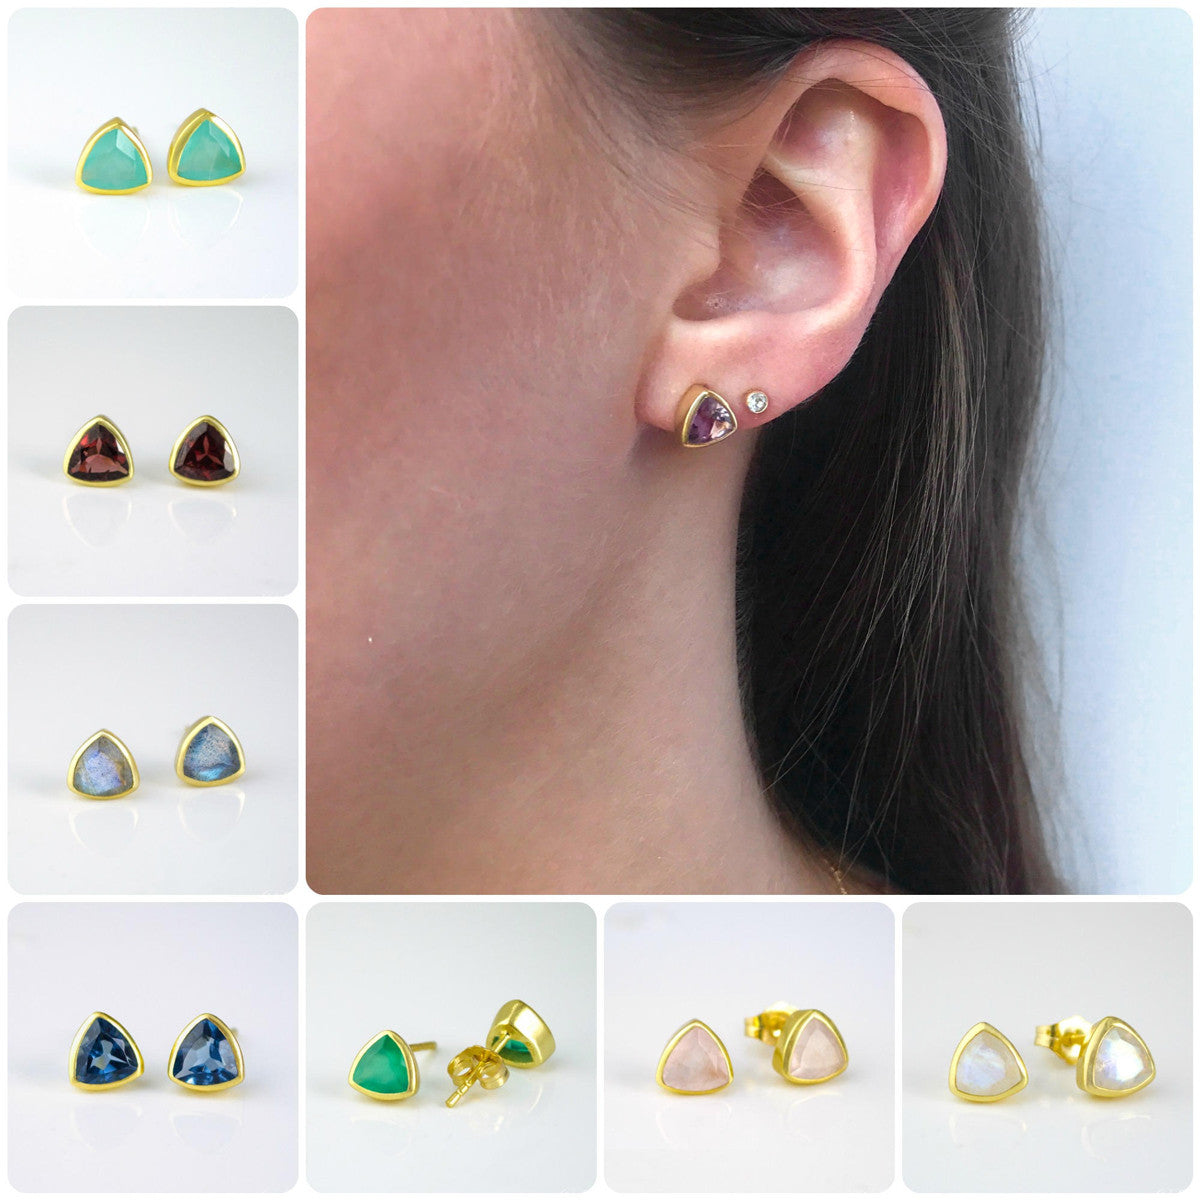 product gold nobbon button everyday helix earring earrings